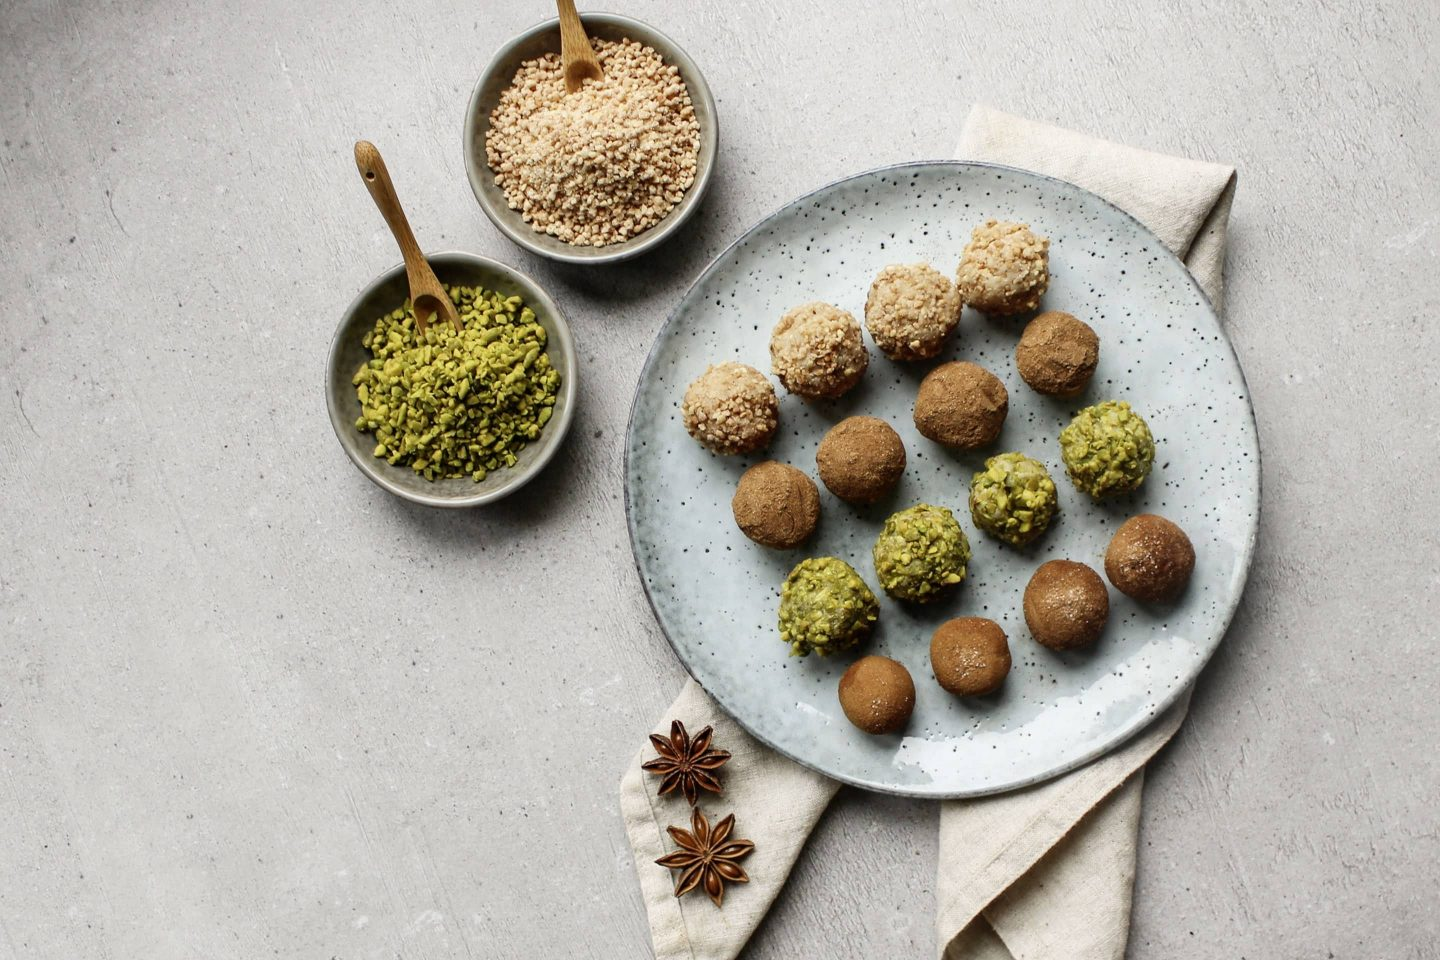 Marzipan balls with bourbon vanilla sugar on a light blue plate with 2 bowls full of pistachios and hazelnut brittle